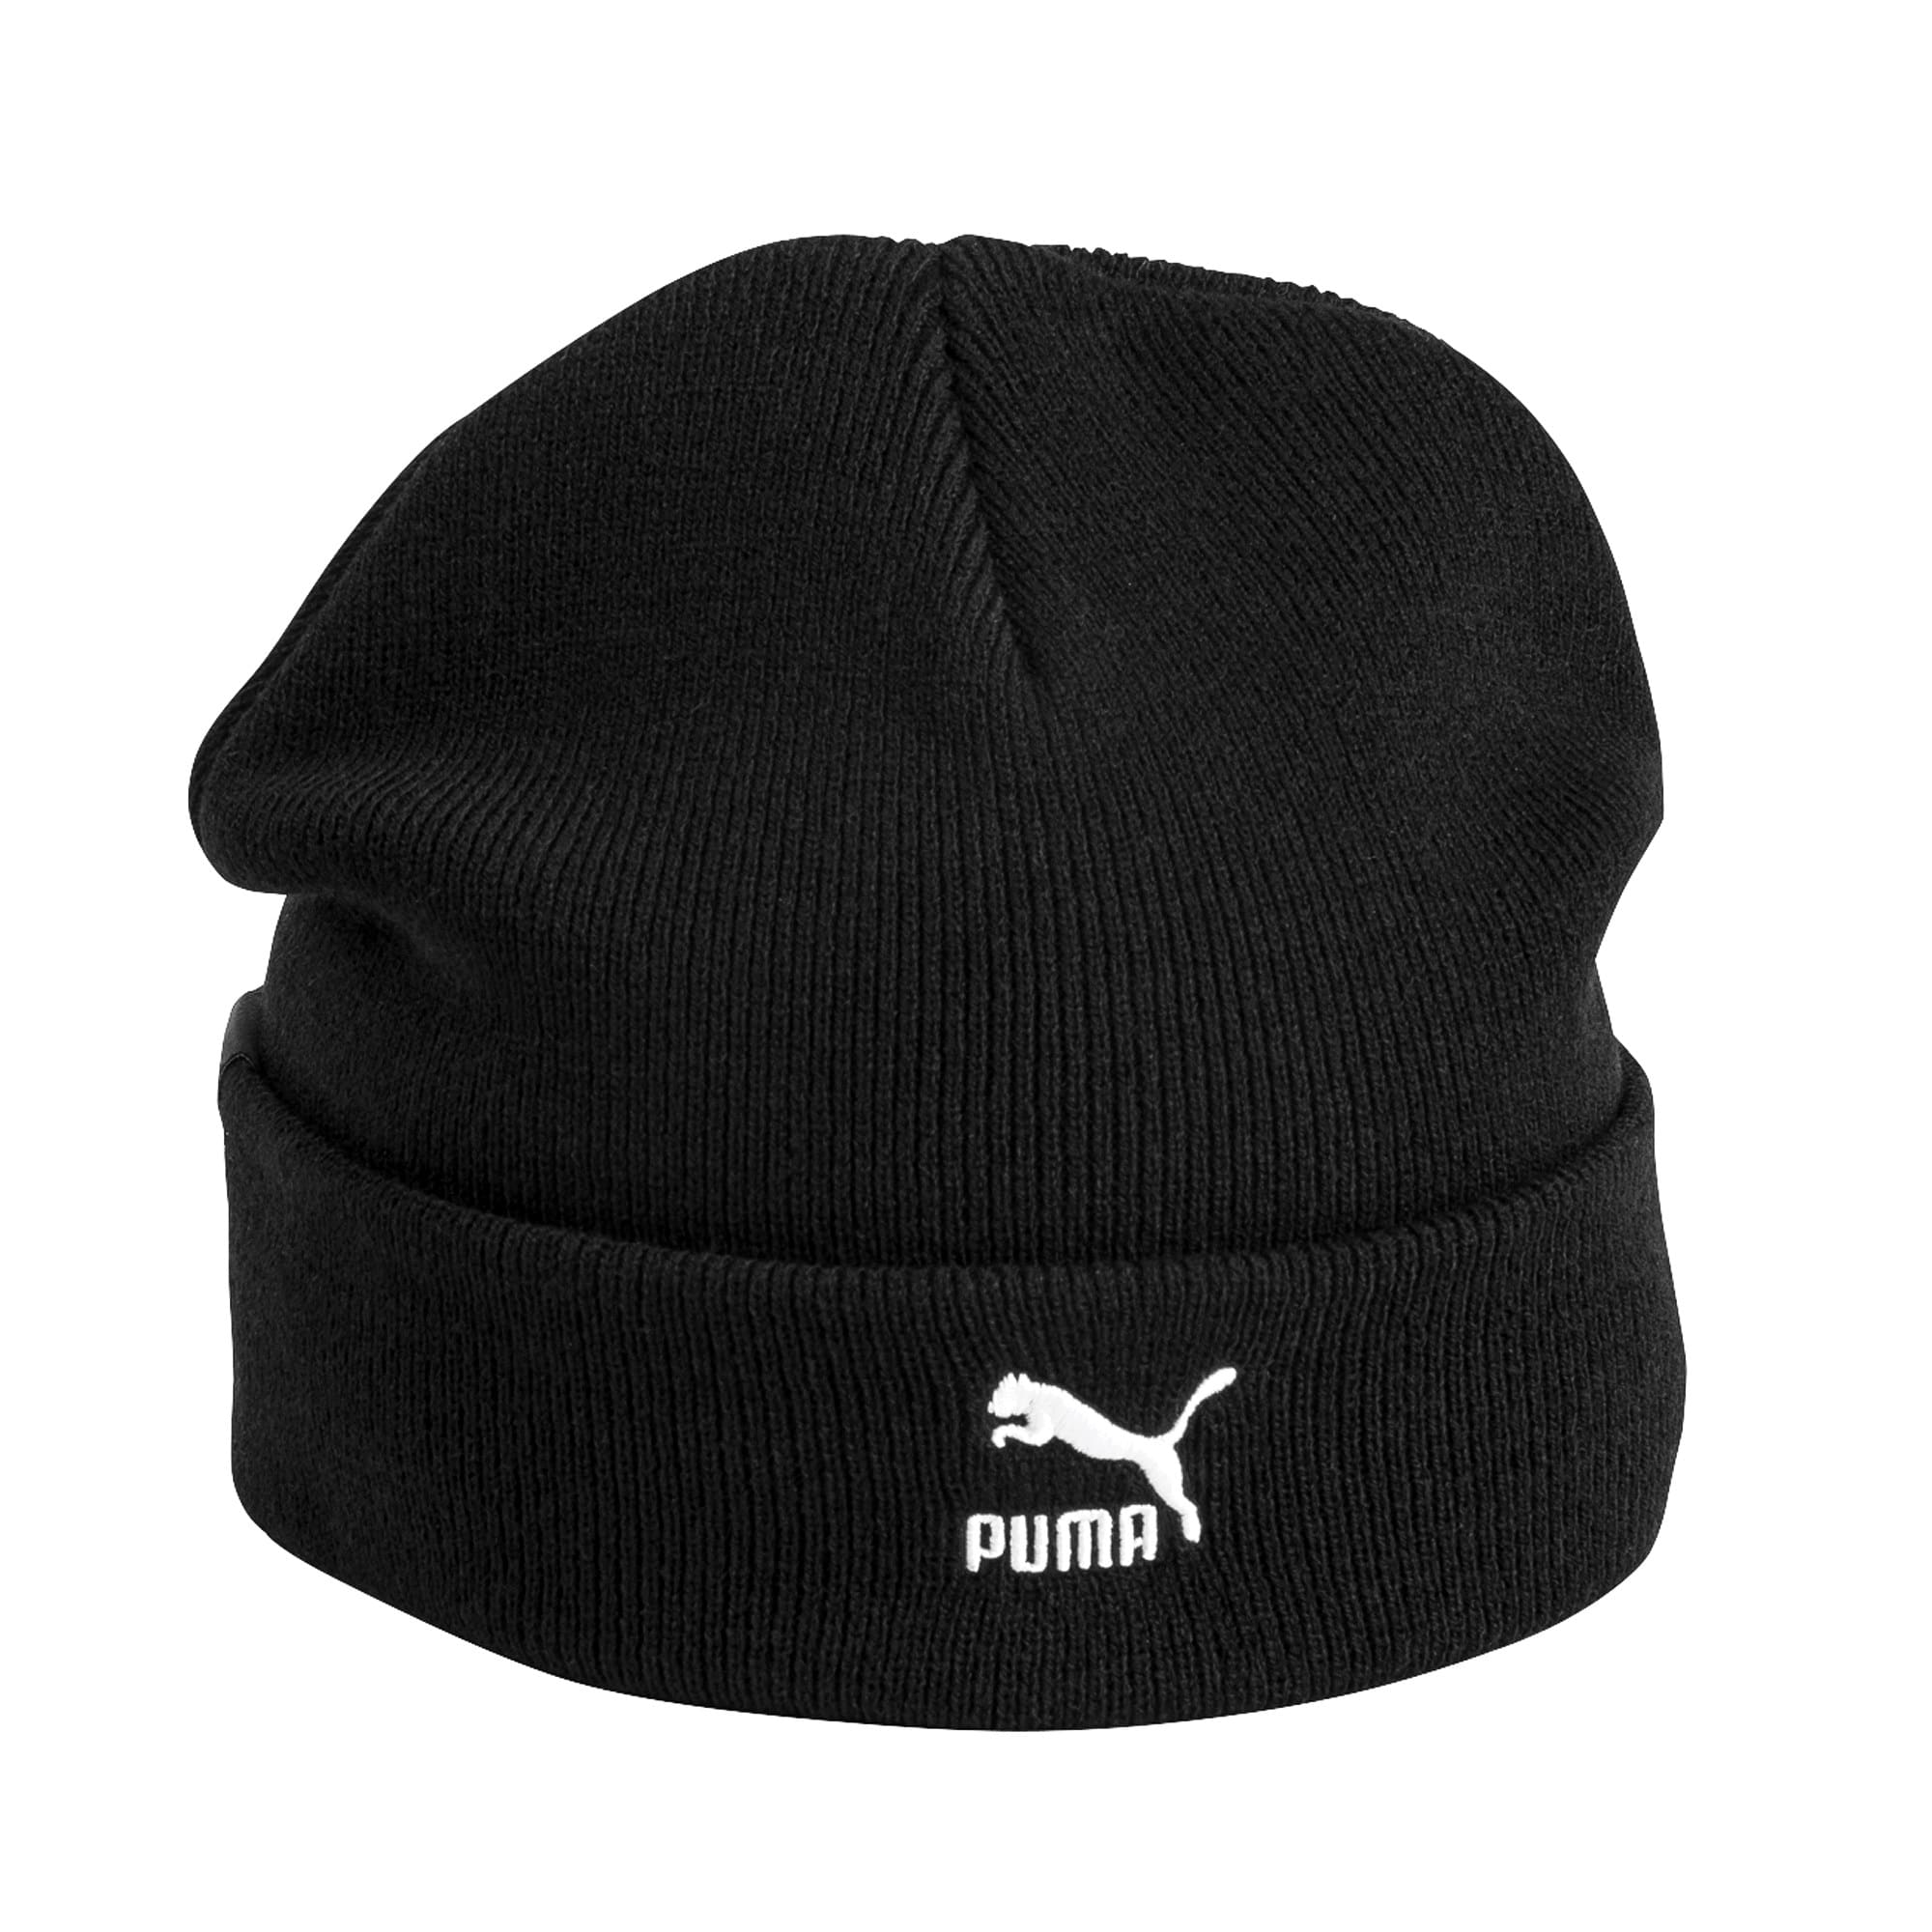 Thumbnail 4 of Archive Mid Fit Beanie, Puma Black, medium